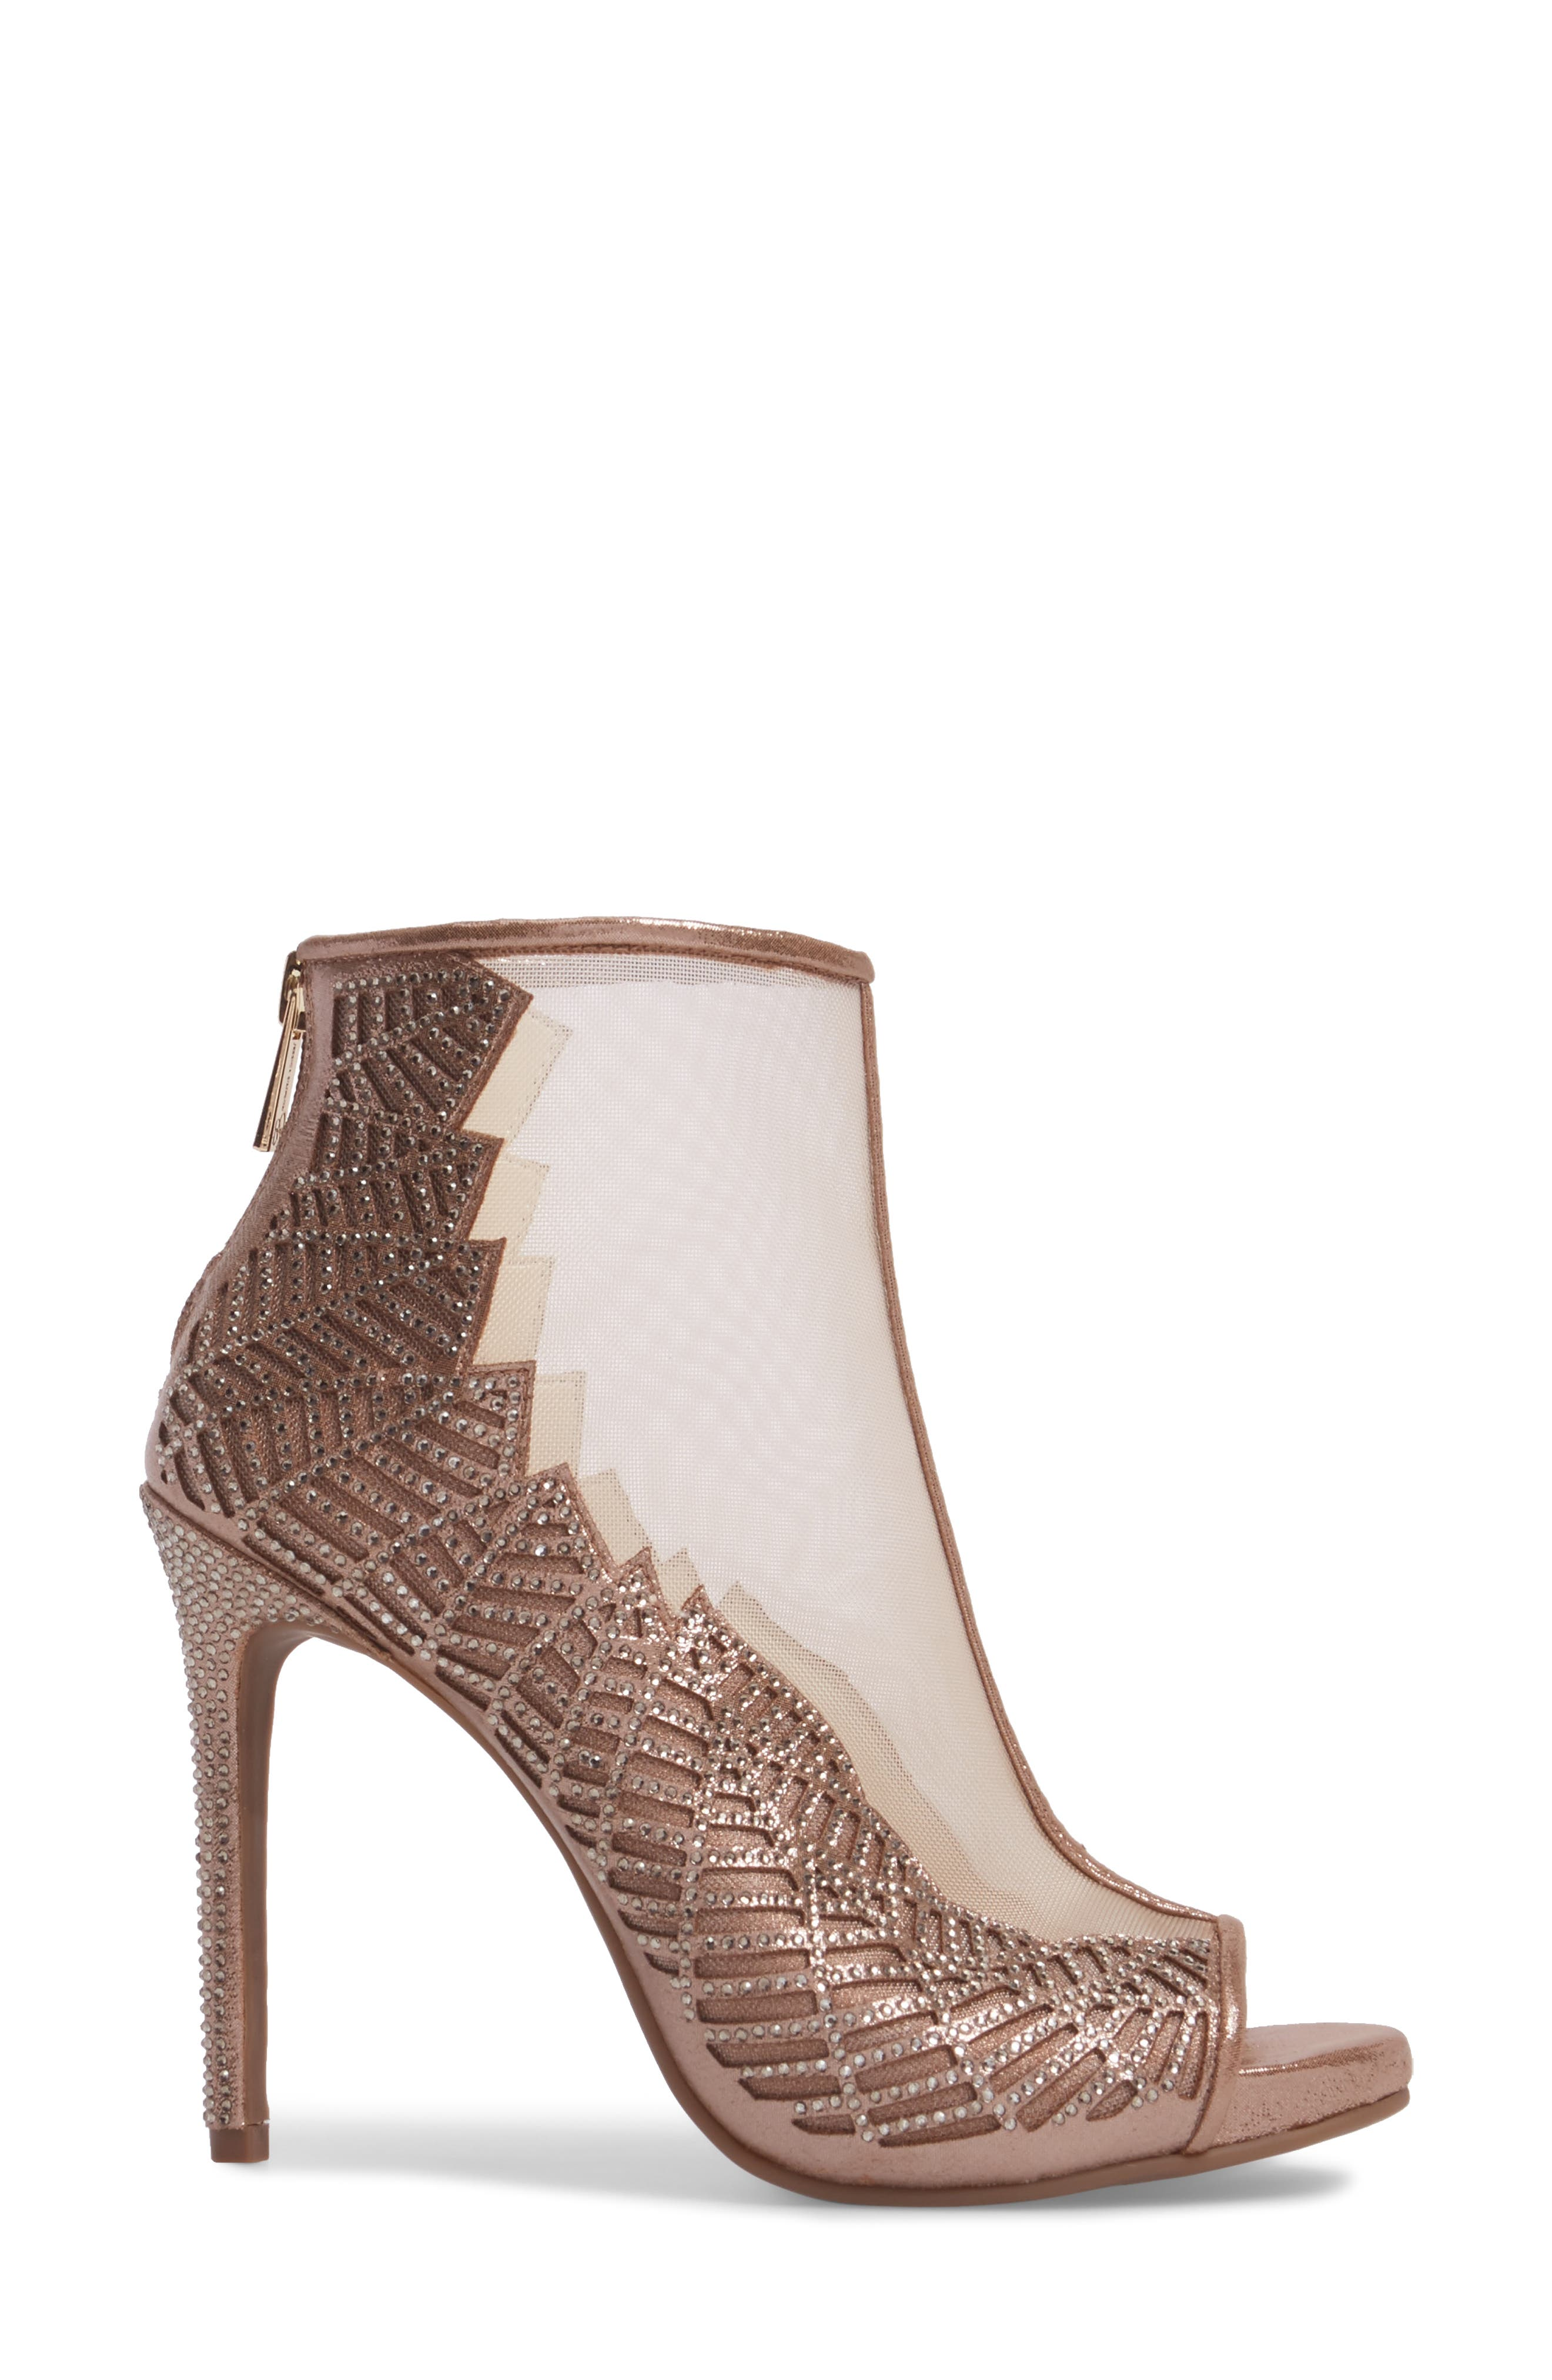 Radko Embellished Sandal,                             Alternate thumbnail 3, color,                             Light Sheer Mesh